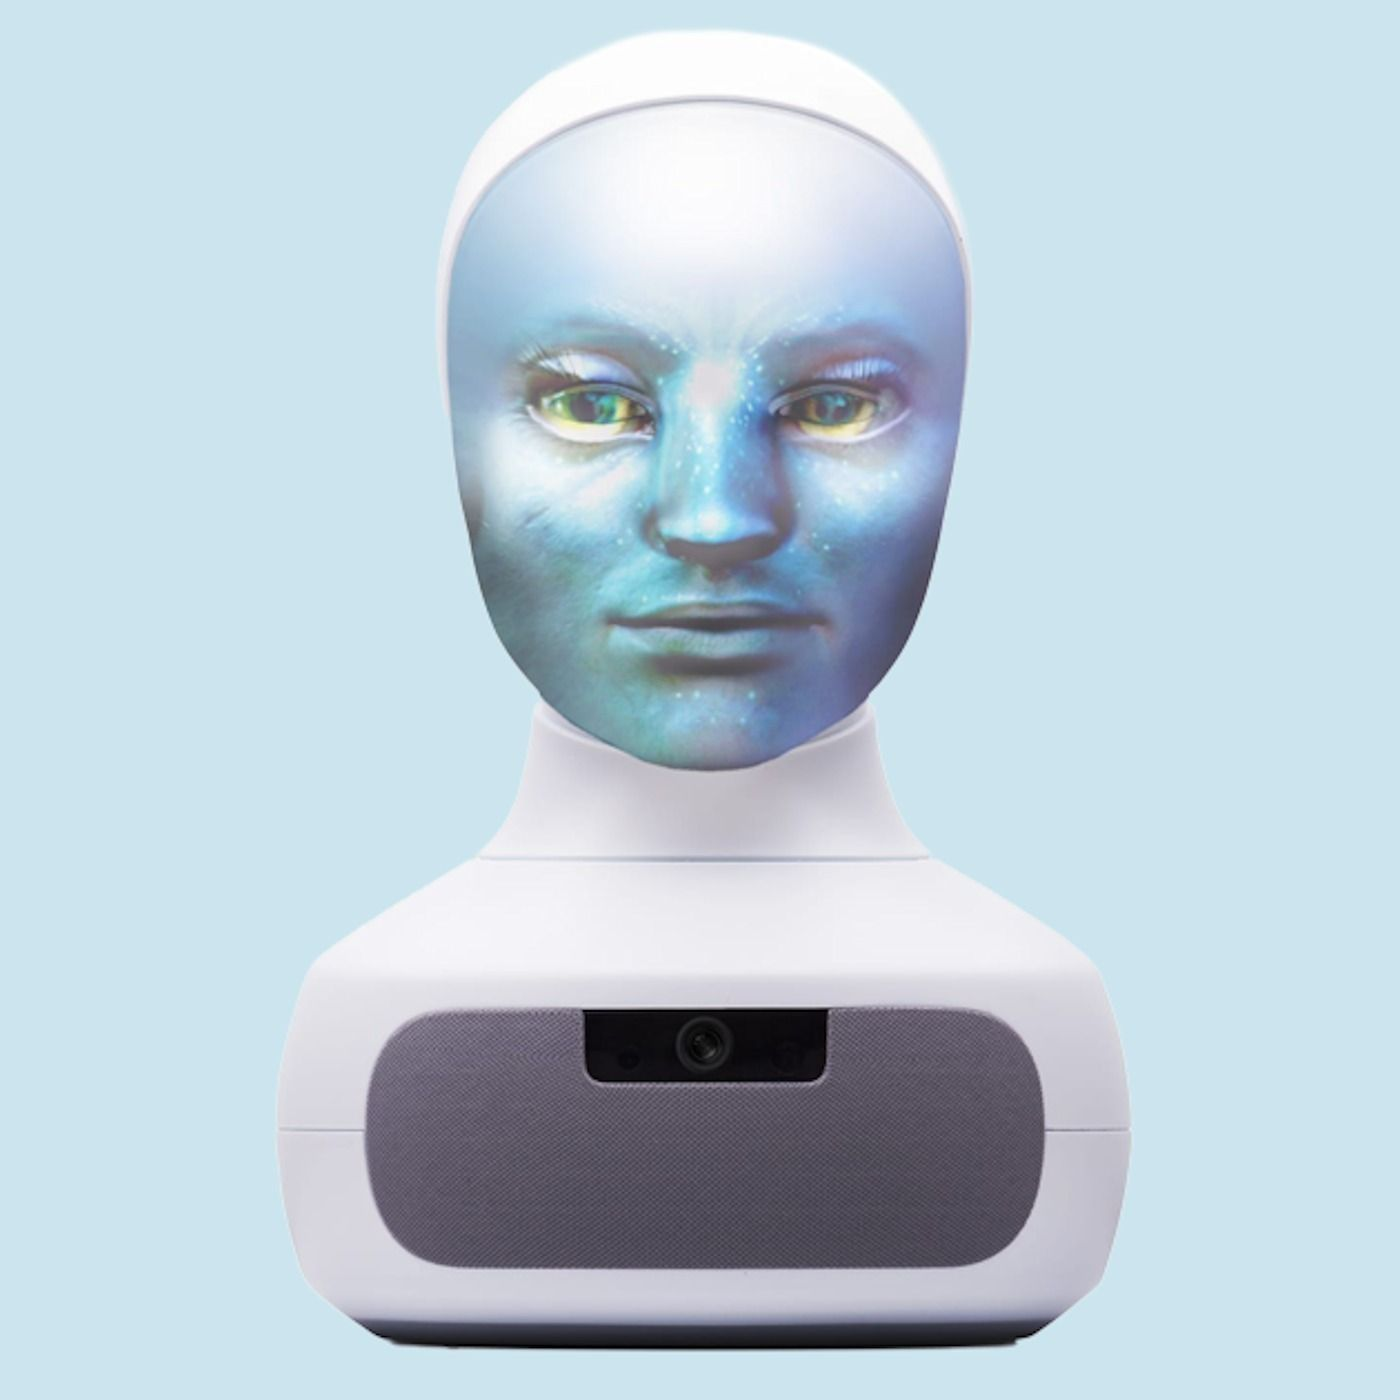 Robots are Now Hiring Humans